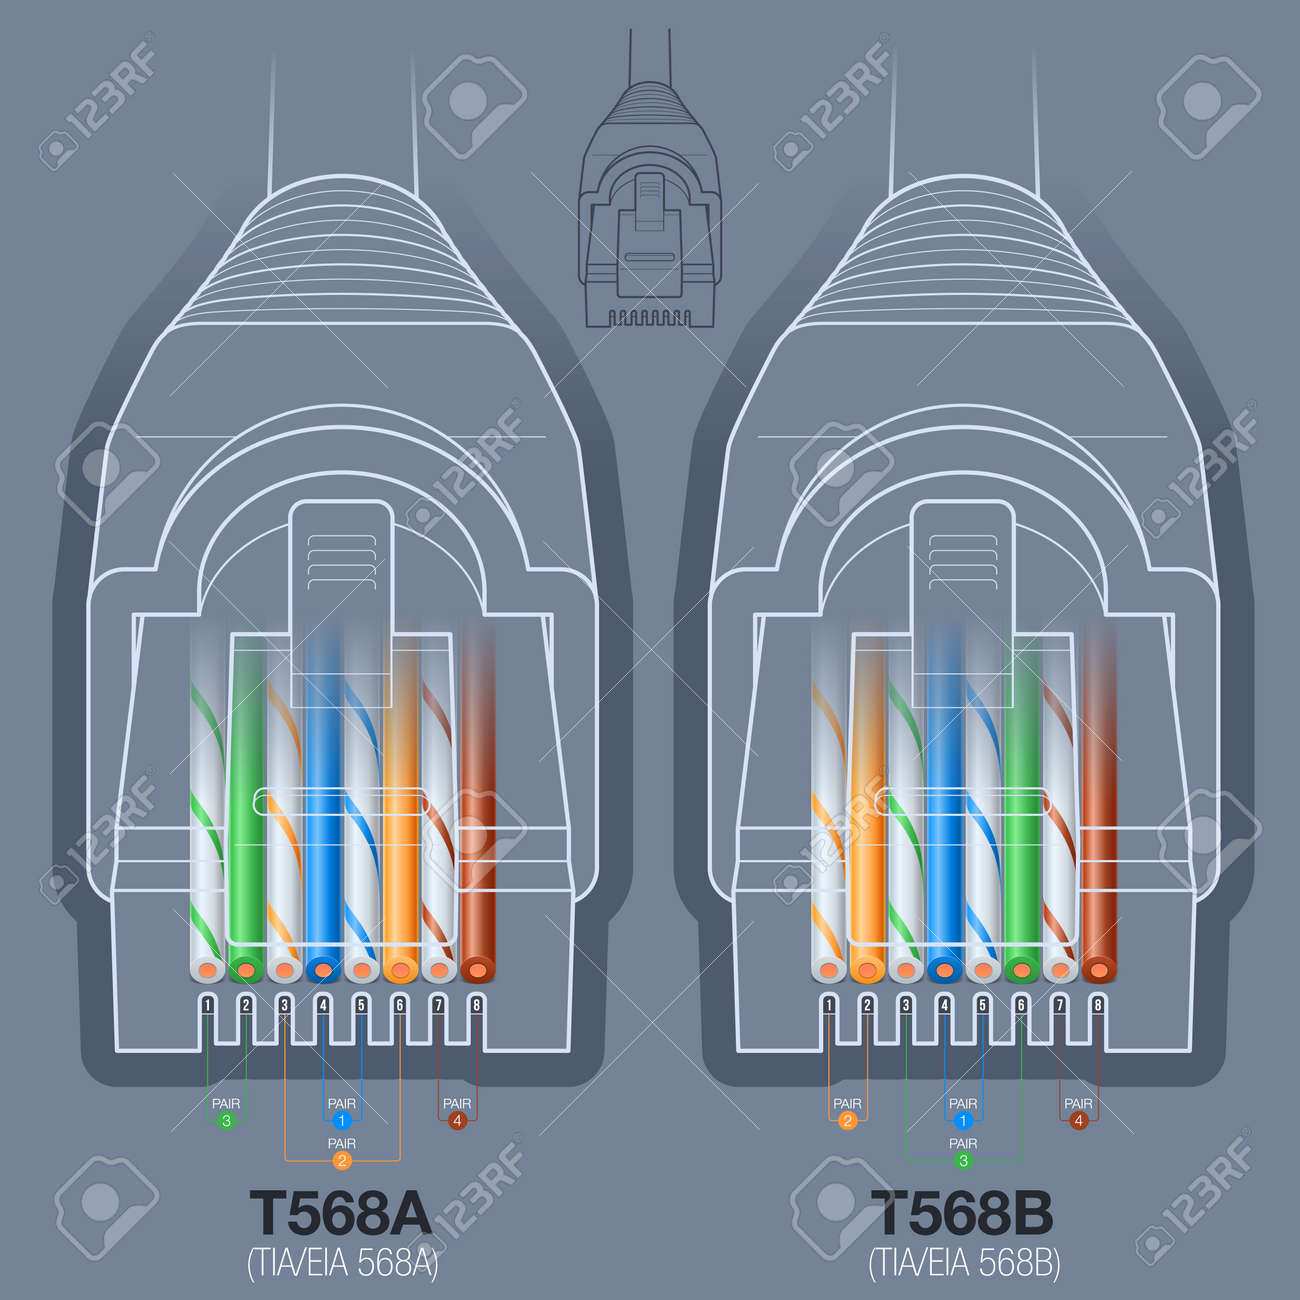 rj45 t568b wiring diagram 1997 ford super duty network cable connector t568a royalty stock vector 45694360